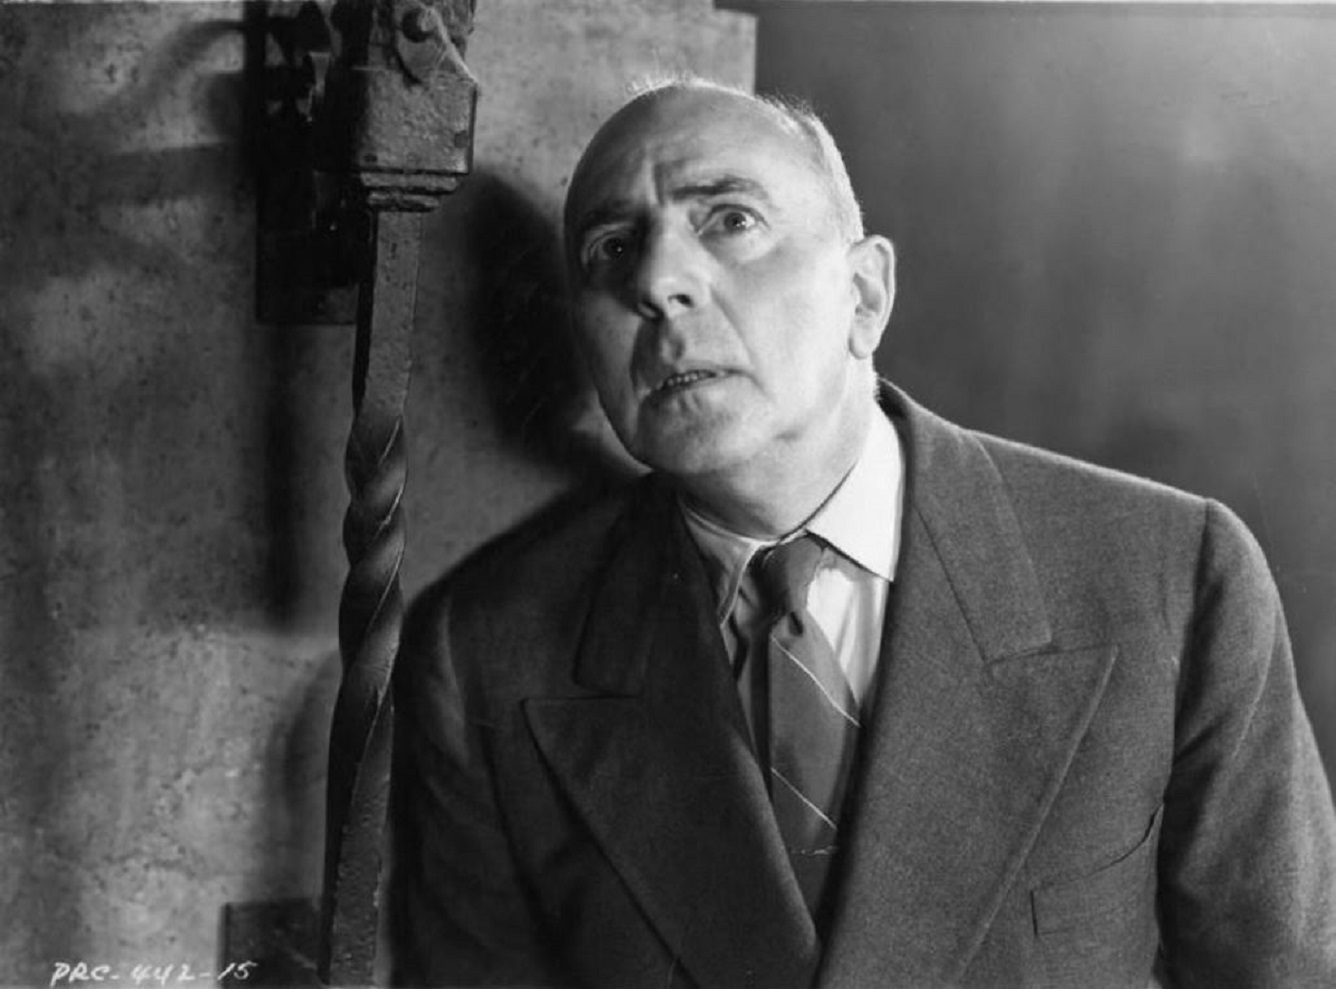 Mad archaeologist George Zucco in The Flying Serpent (1946)